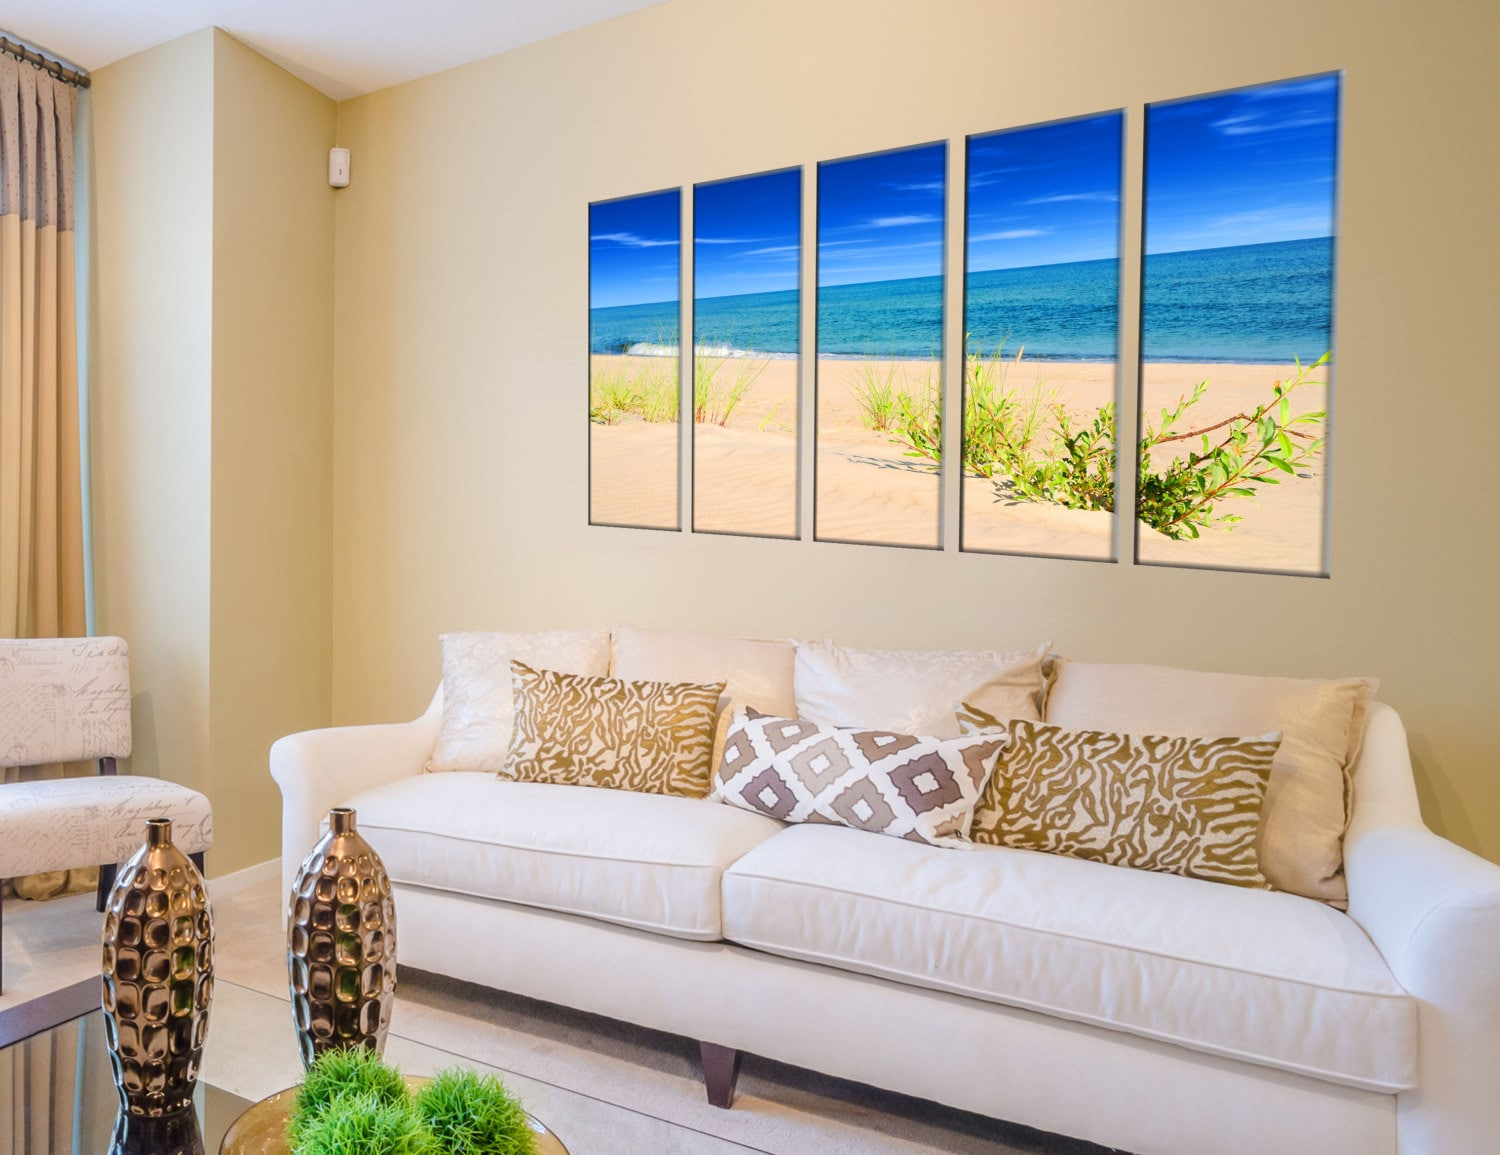 Canvas Prints - Beach Canvas Art - Beach Photo Prints - Ocean Canvas ...